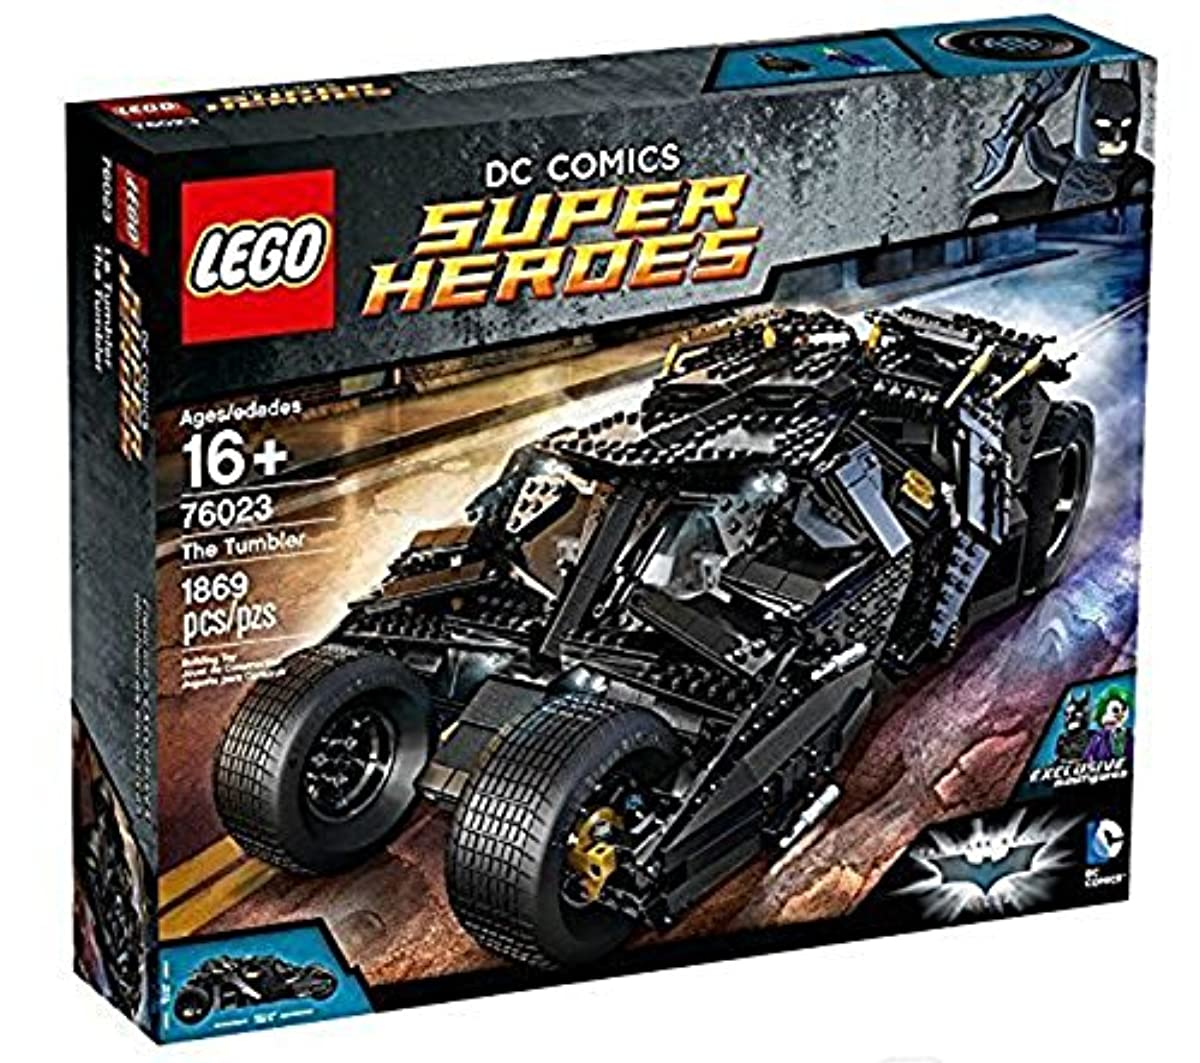 [레고 배트맨] LEGO Batman The Tumbler - 76023